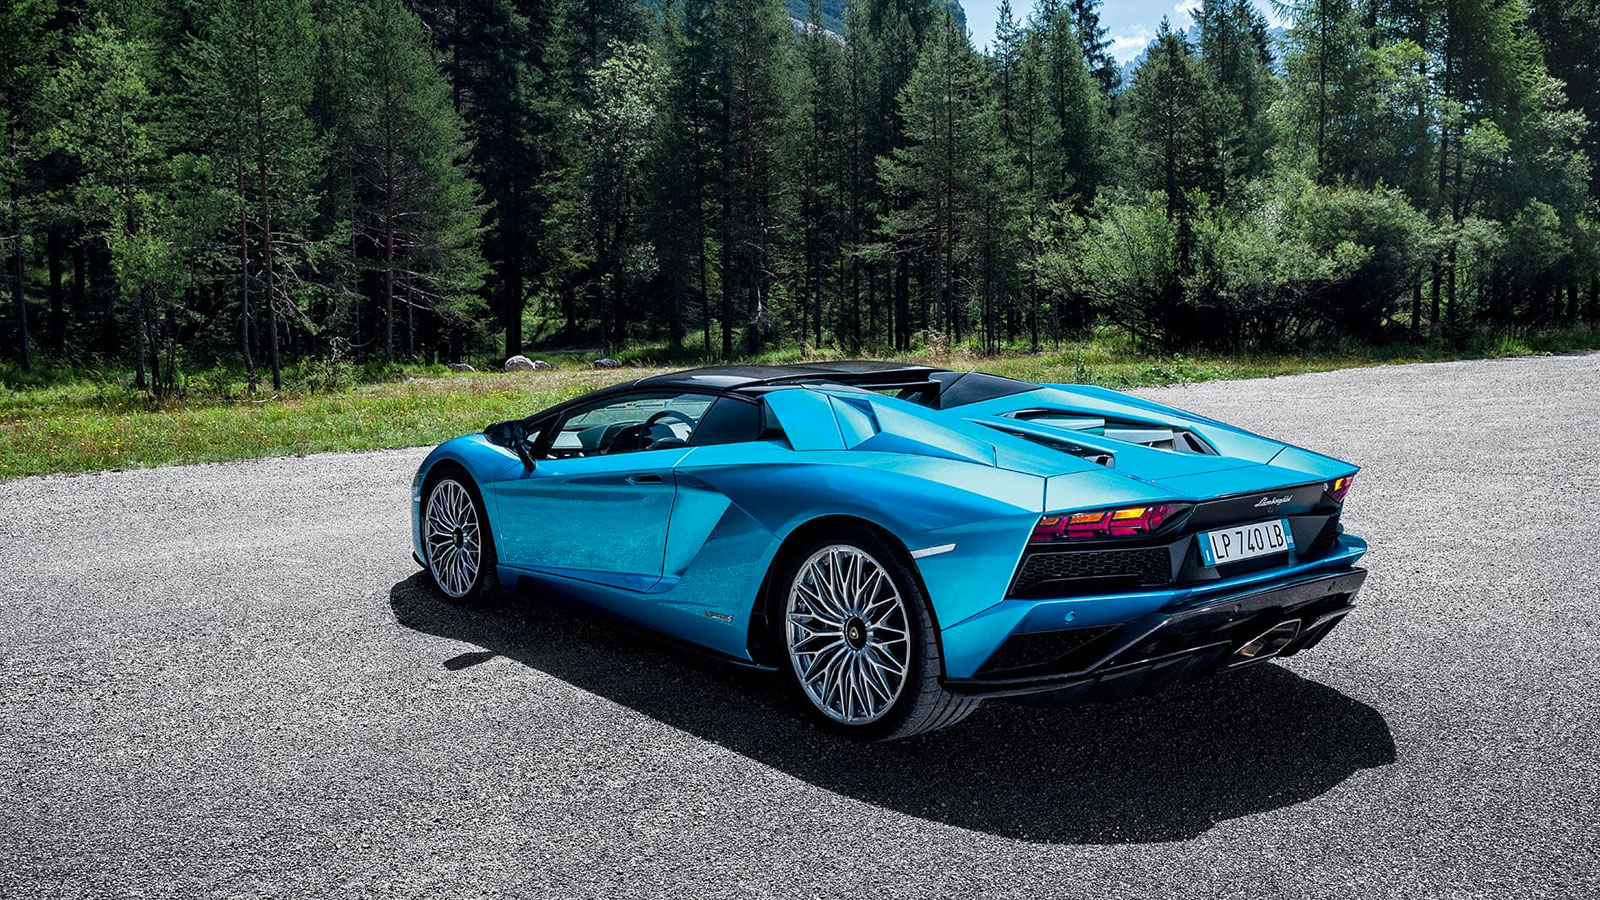 Lamborghini Aventador S Roadster - The Open Top Icon image 11